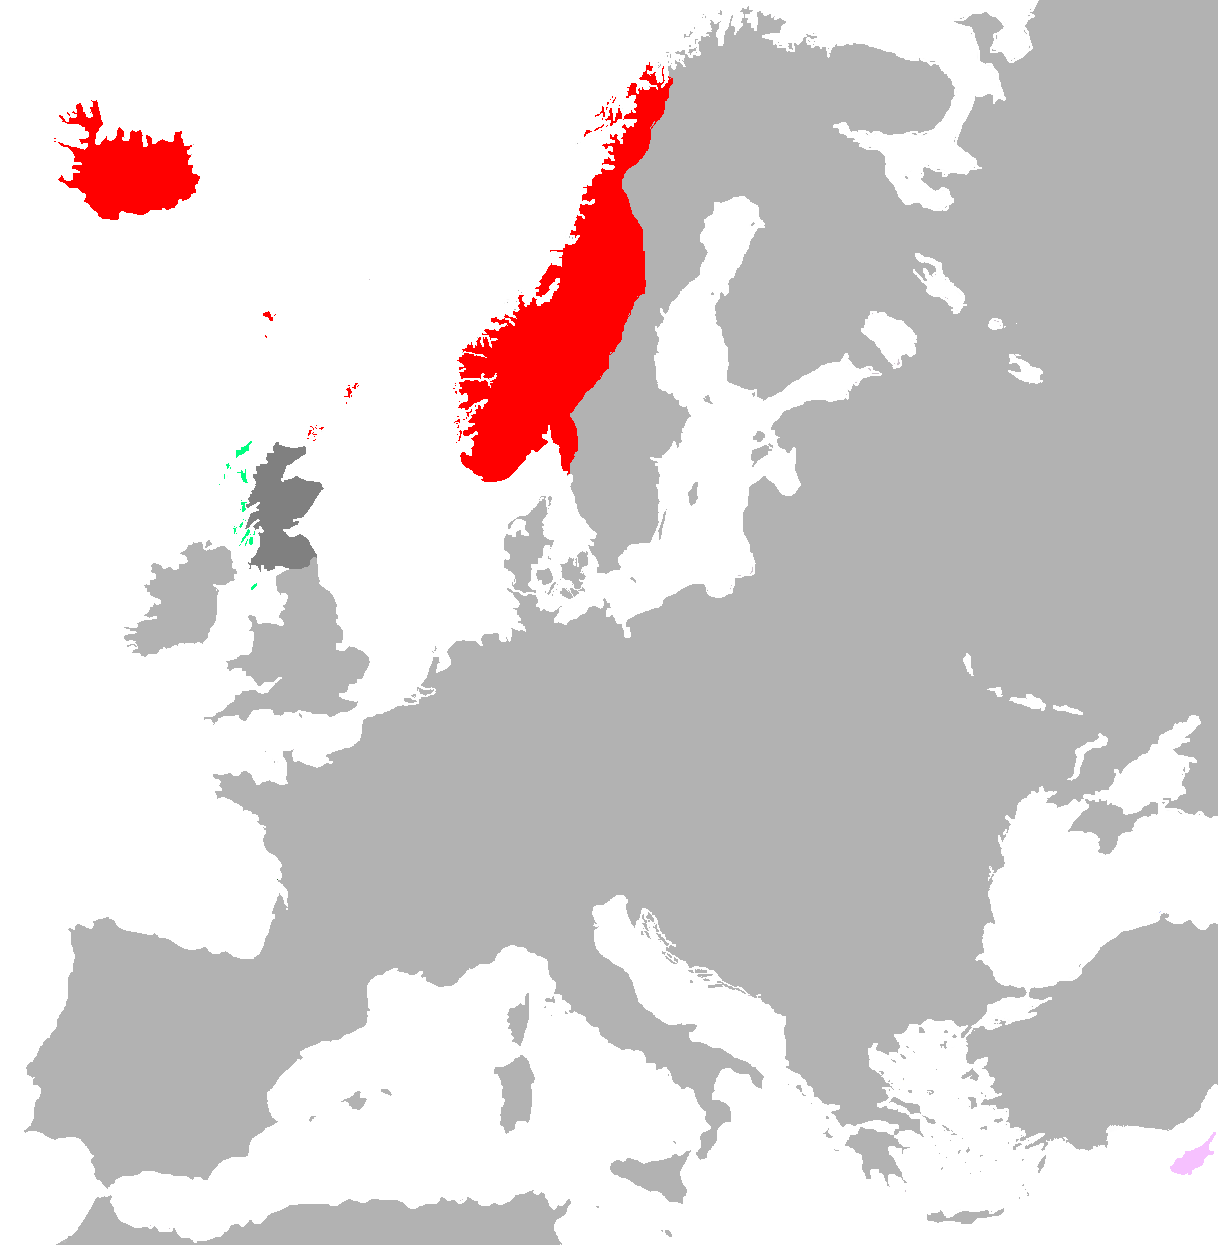 File:Kingdom of Norway.png - Wikipedia on republic of panama map, republic of maldives map, russian federation map, united arab emirates map, republic of moldova map, republic of turkey map, republic of san marino map, republic of india map, bailiwick of jersey map, republic of cyprus map, state of israel map, republic of colombia map, republic of south africa map, people's republic of china map, united states of america map, united republic of tanzania map, republic of belarus map, republic of nauru map, japan map, republic of palau map,